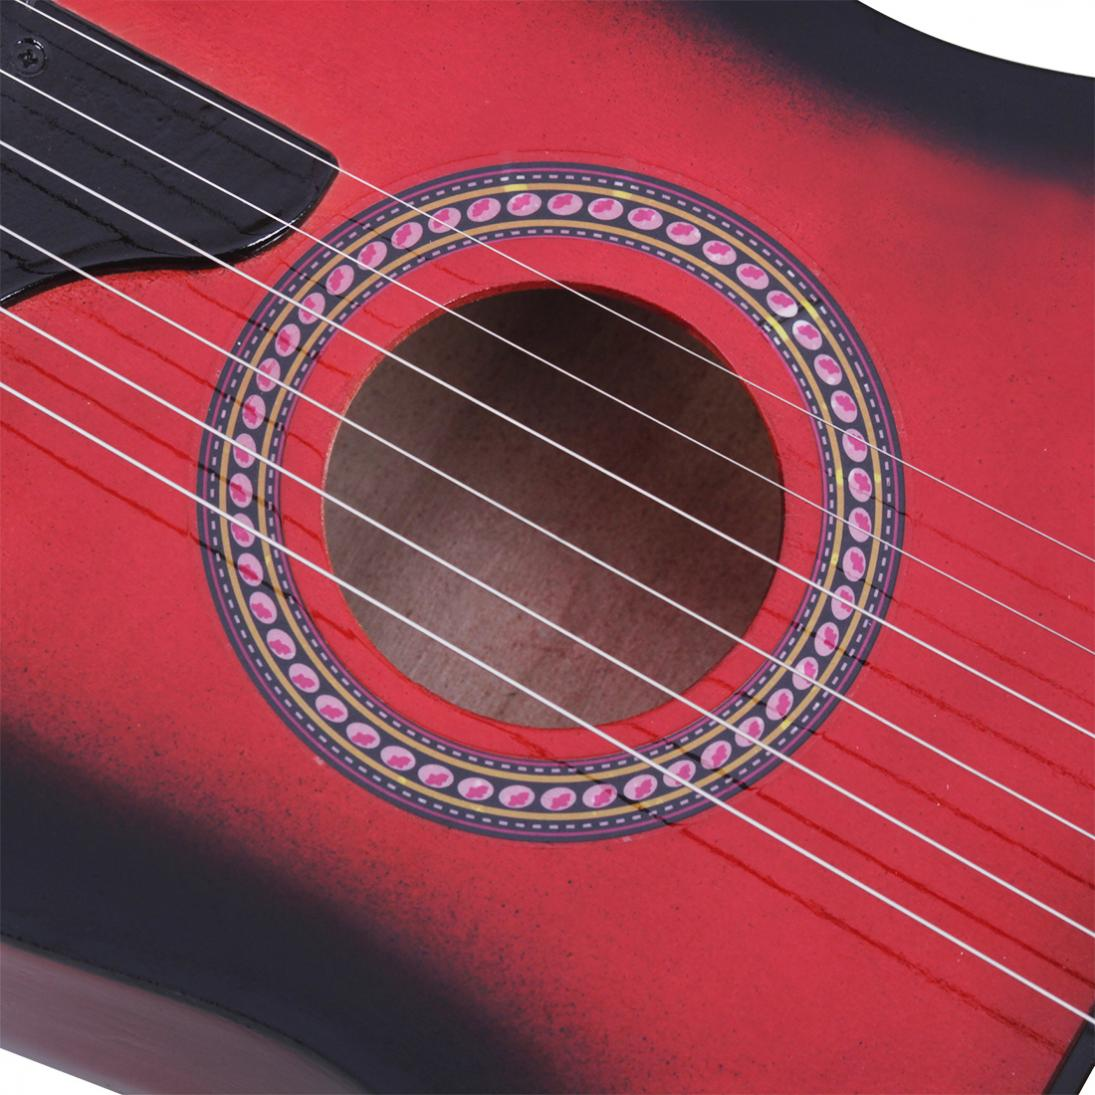 25 Inch Basswood Acoustic Guitar with  Pick Strings for Children and Beginner Send gifts Musical Stringed Instrument hot enlarge